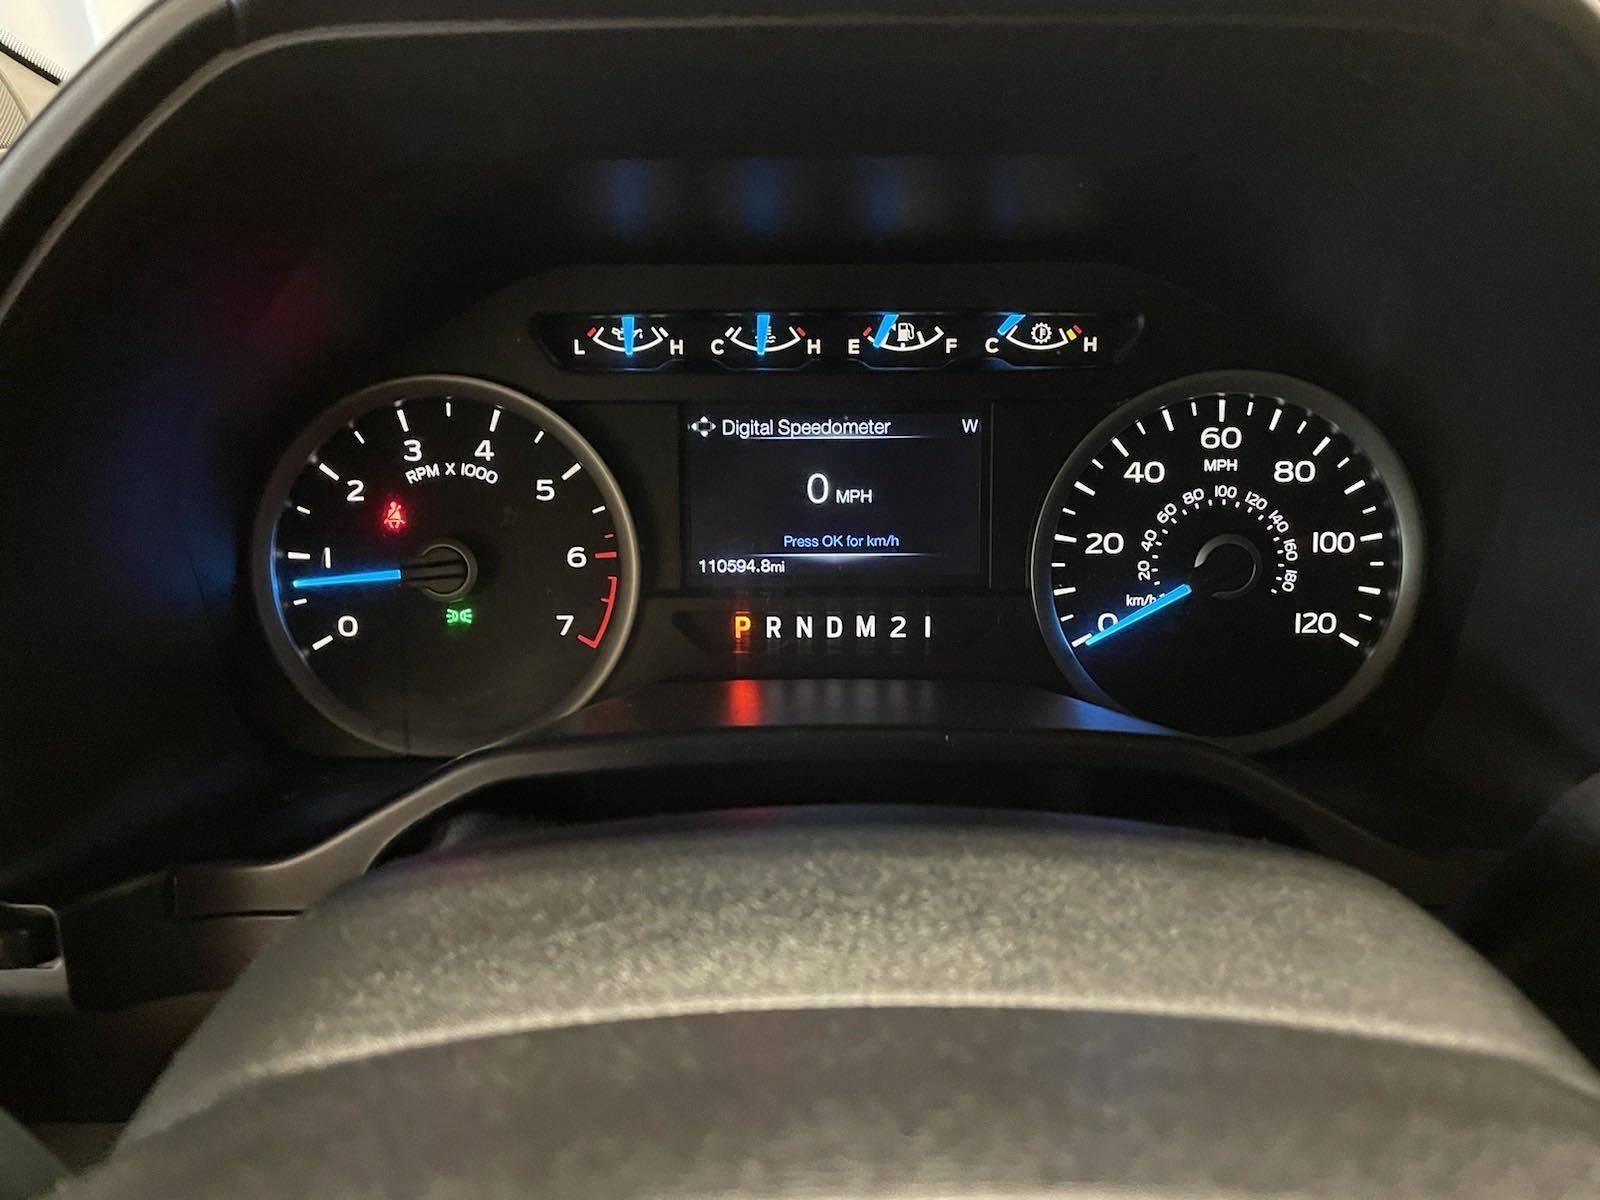 Used 2015 Ford F-150 XLT Crew Cab Pickup for sale in St Joseph MO